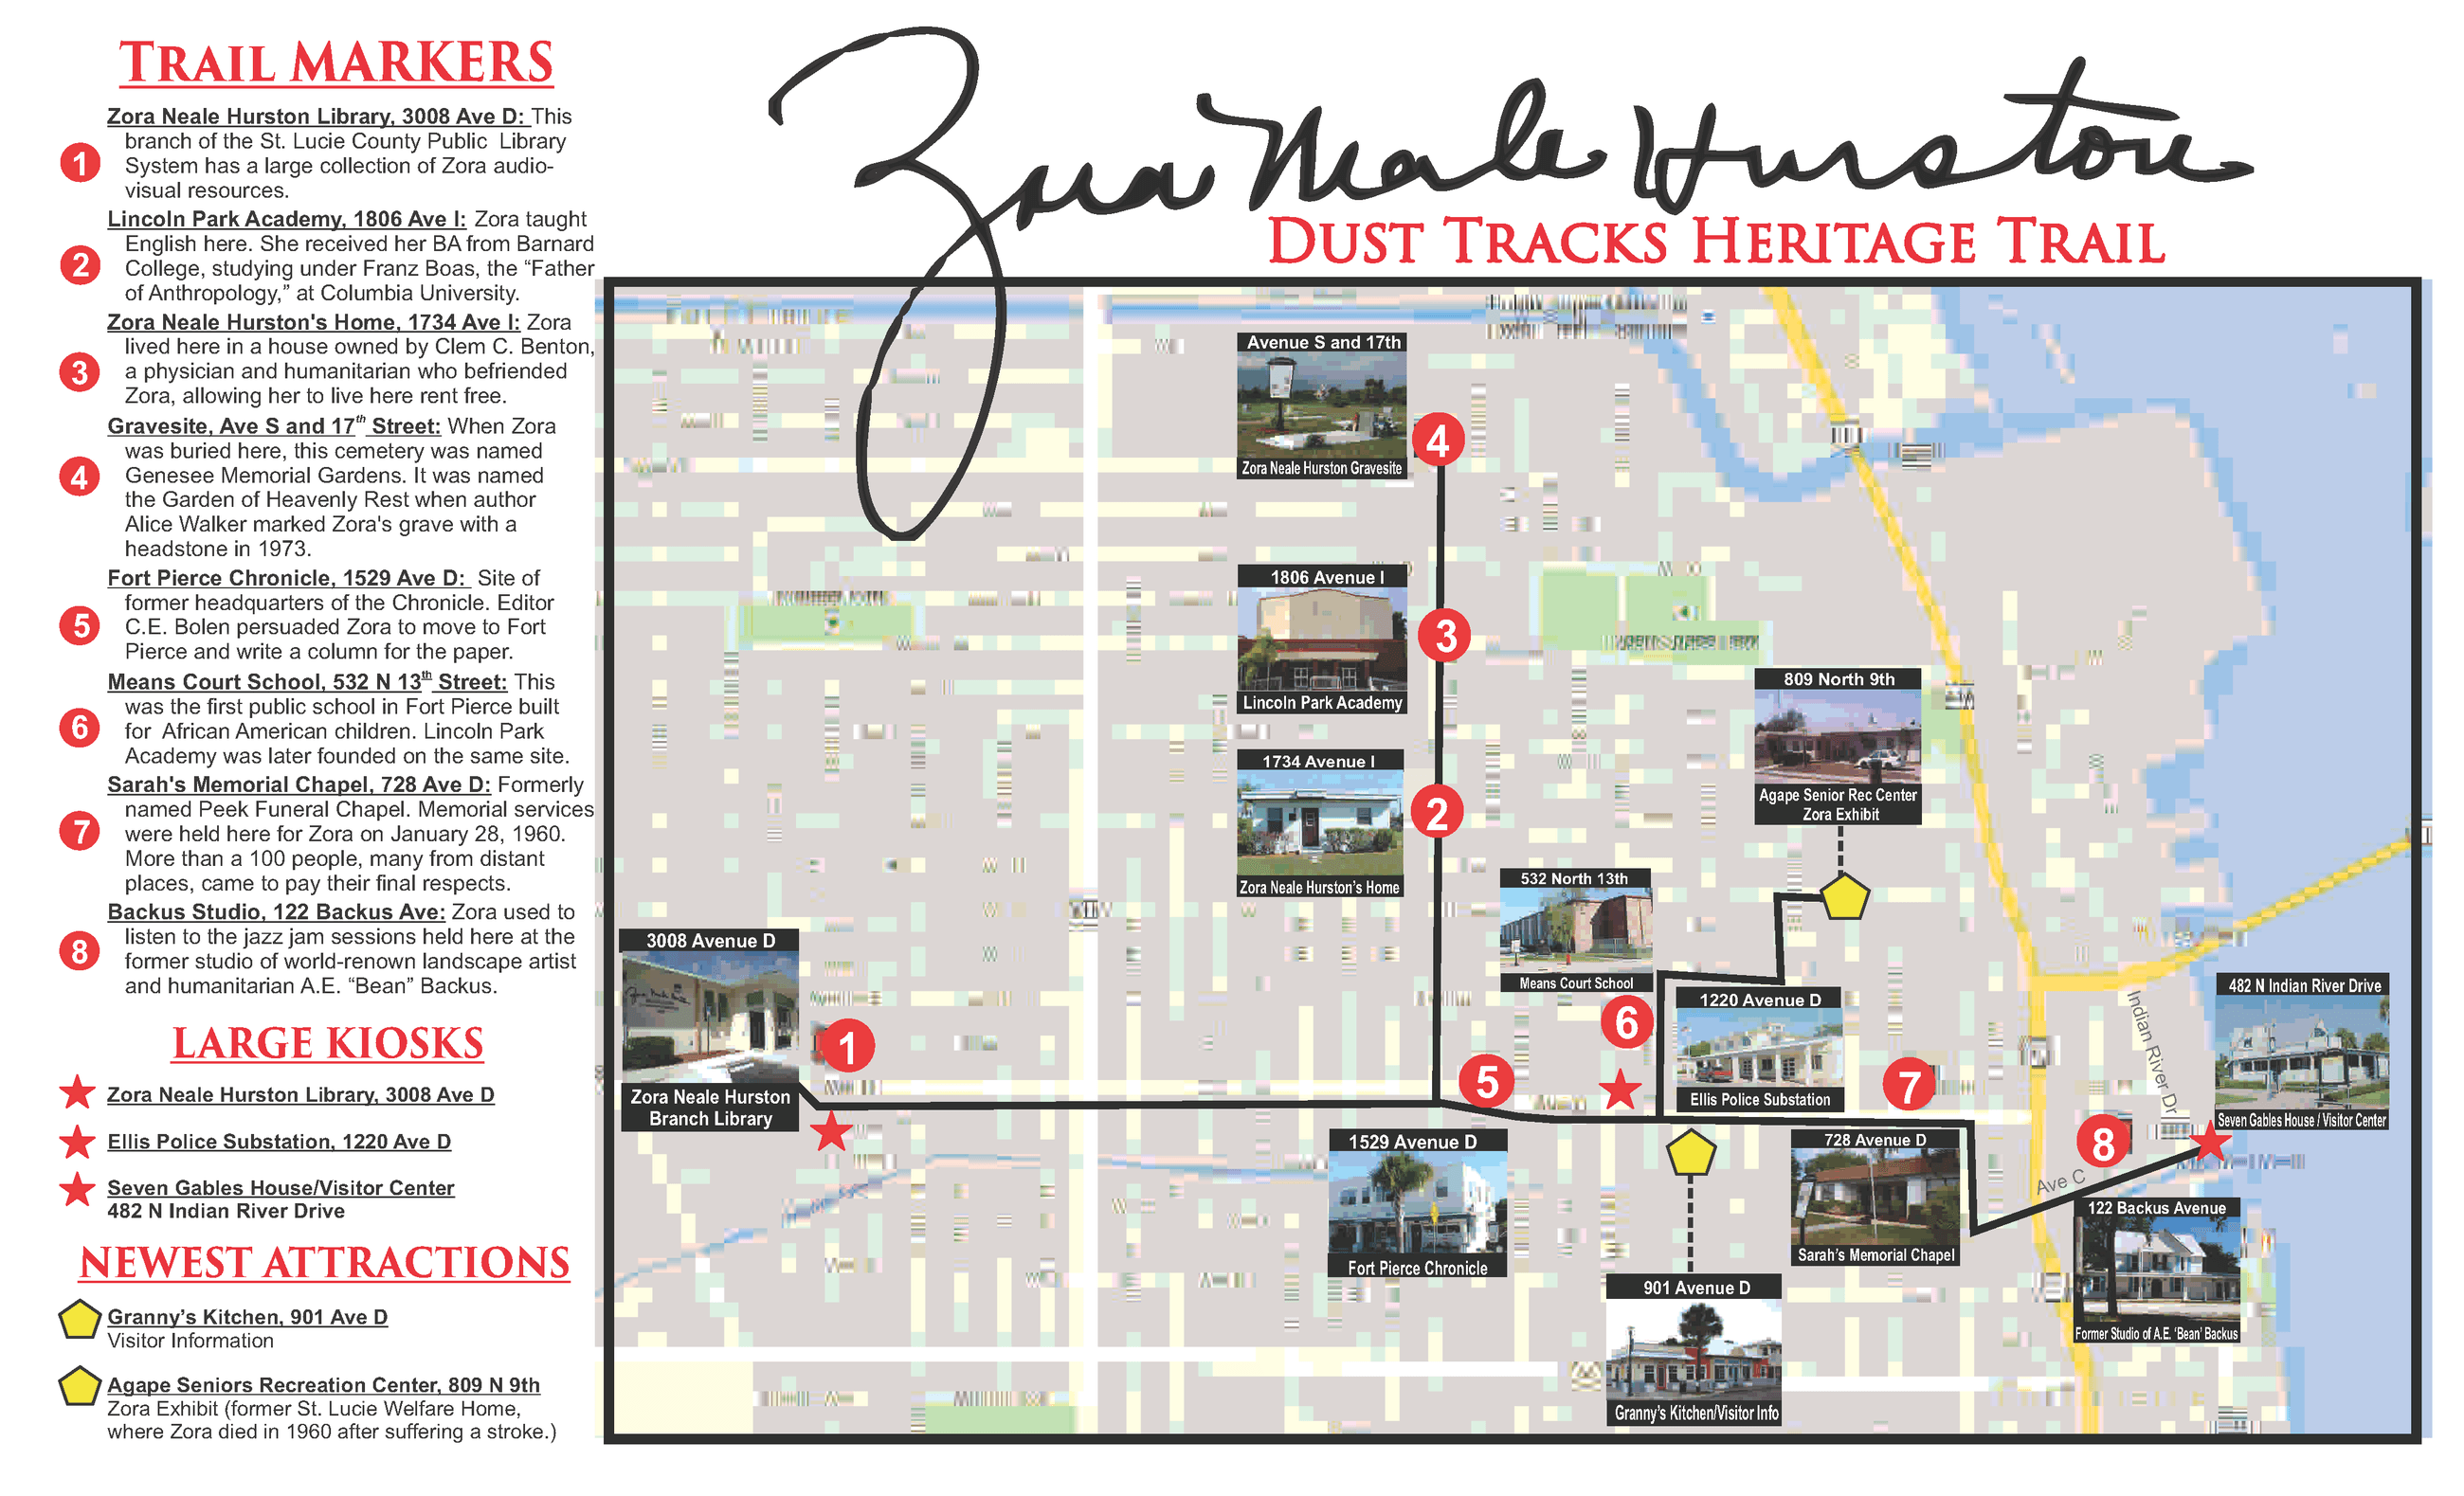 Map of Dust Tracks Heritage Trail